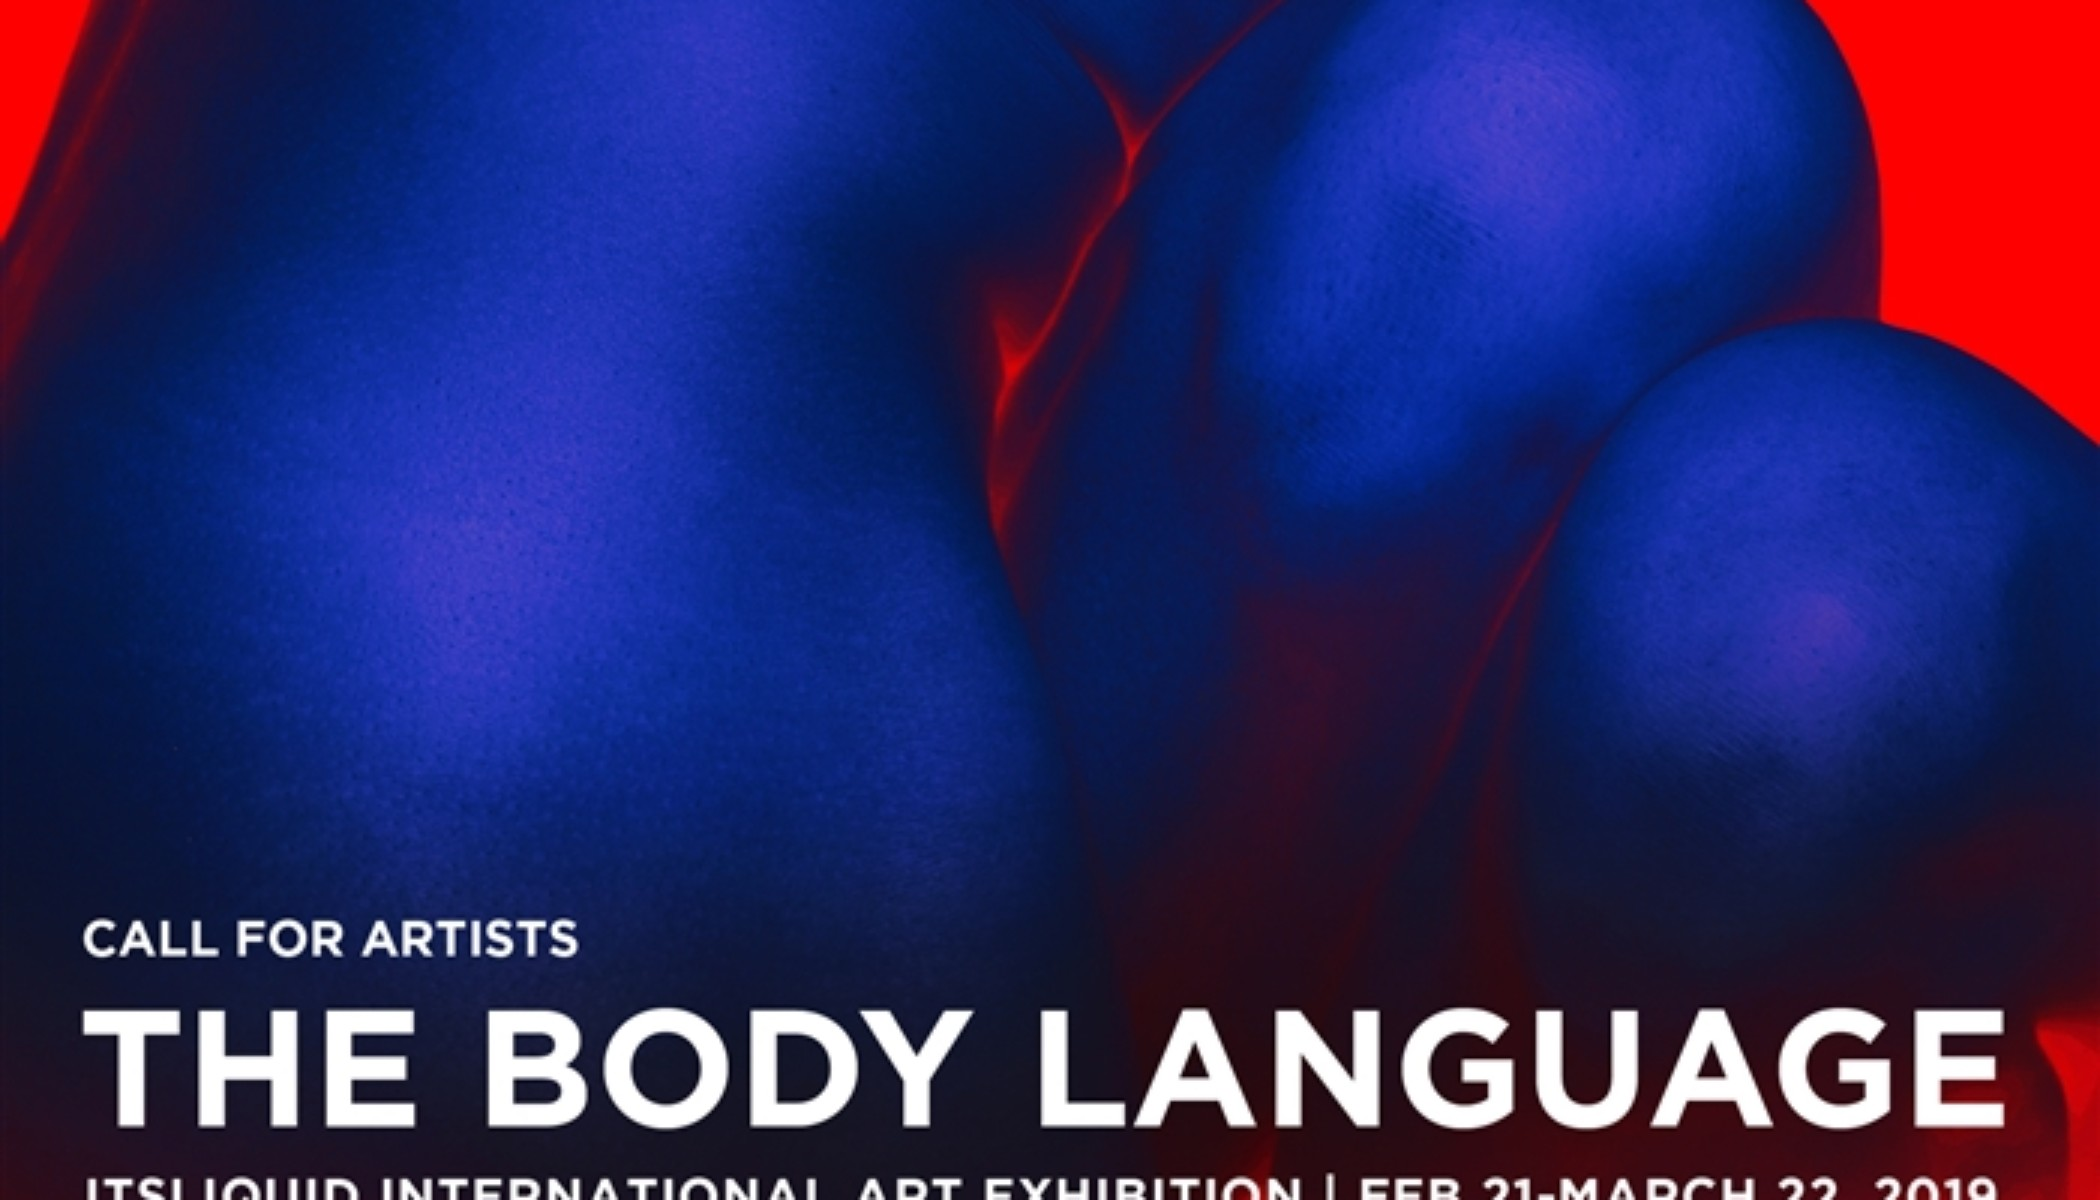 Opportunities: CALL FOR ARTISTS: THE BODY LANGUAGE ITSLIQUID